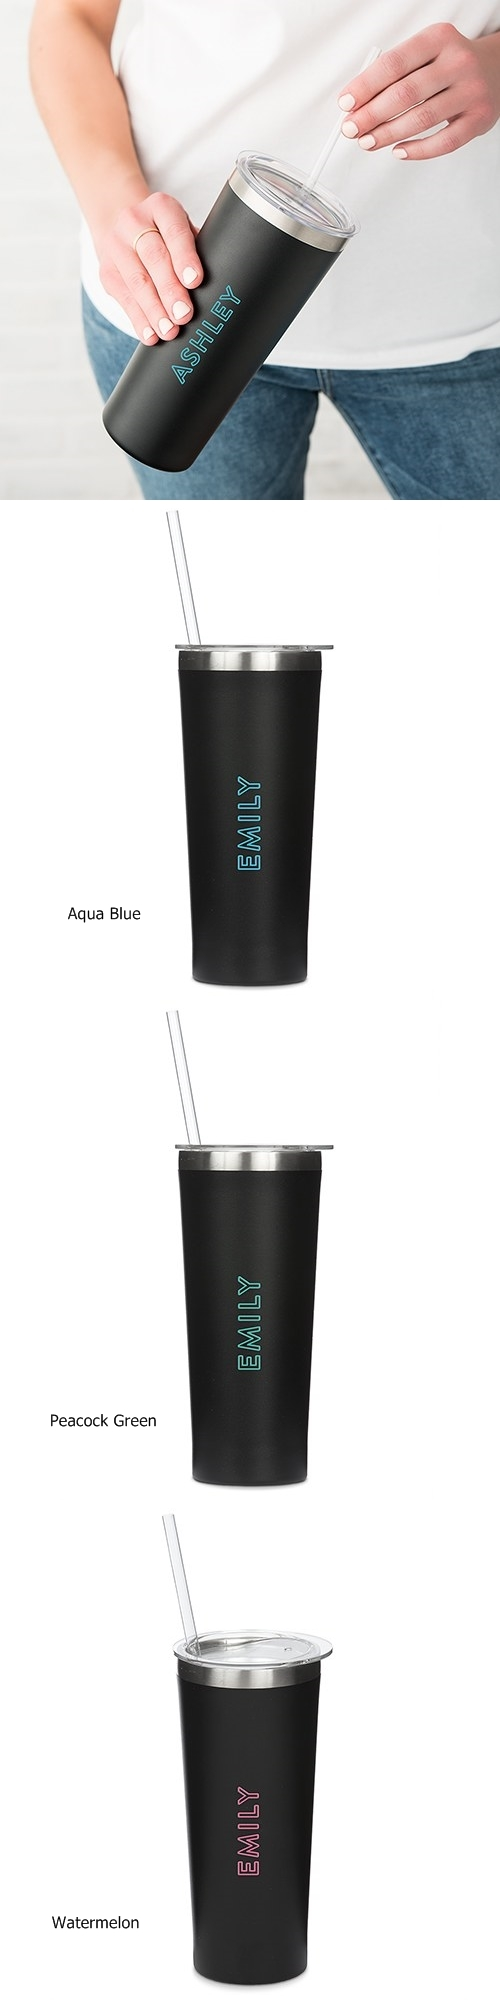 Black-Finish Stainless-Steel Tumbler - Summer Vibes Print (3 Colors)